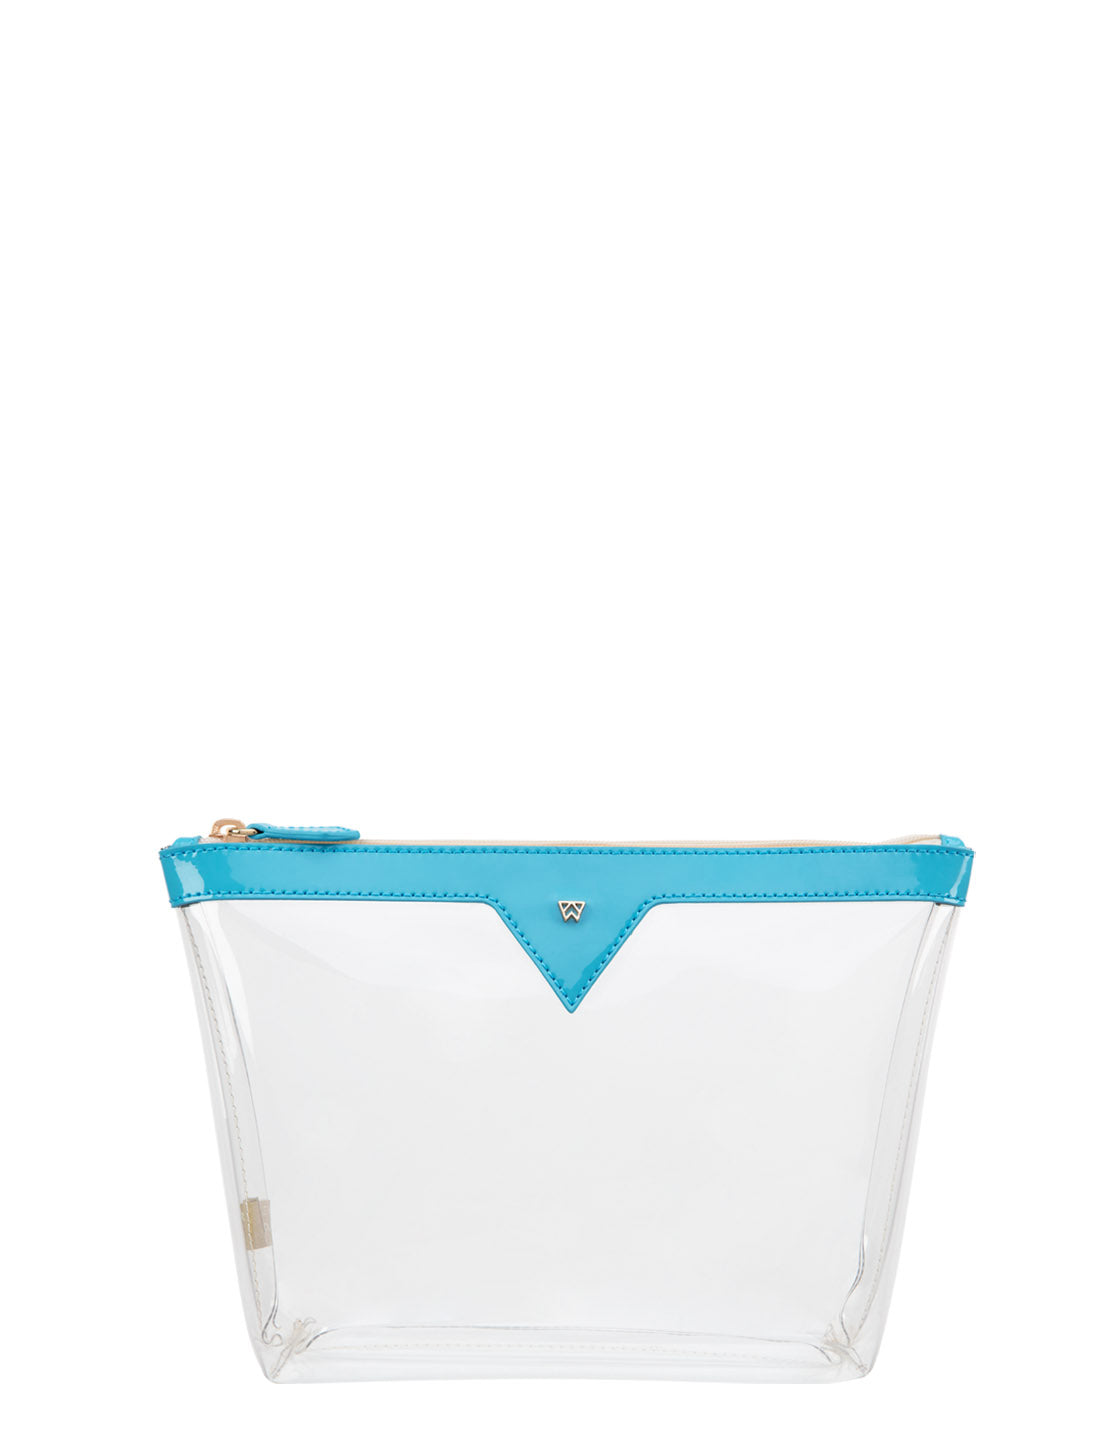 Vacation Please Pouch MEDIUM in Turquoise